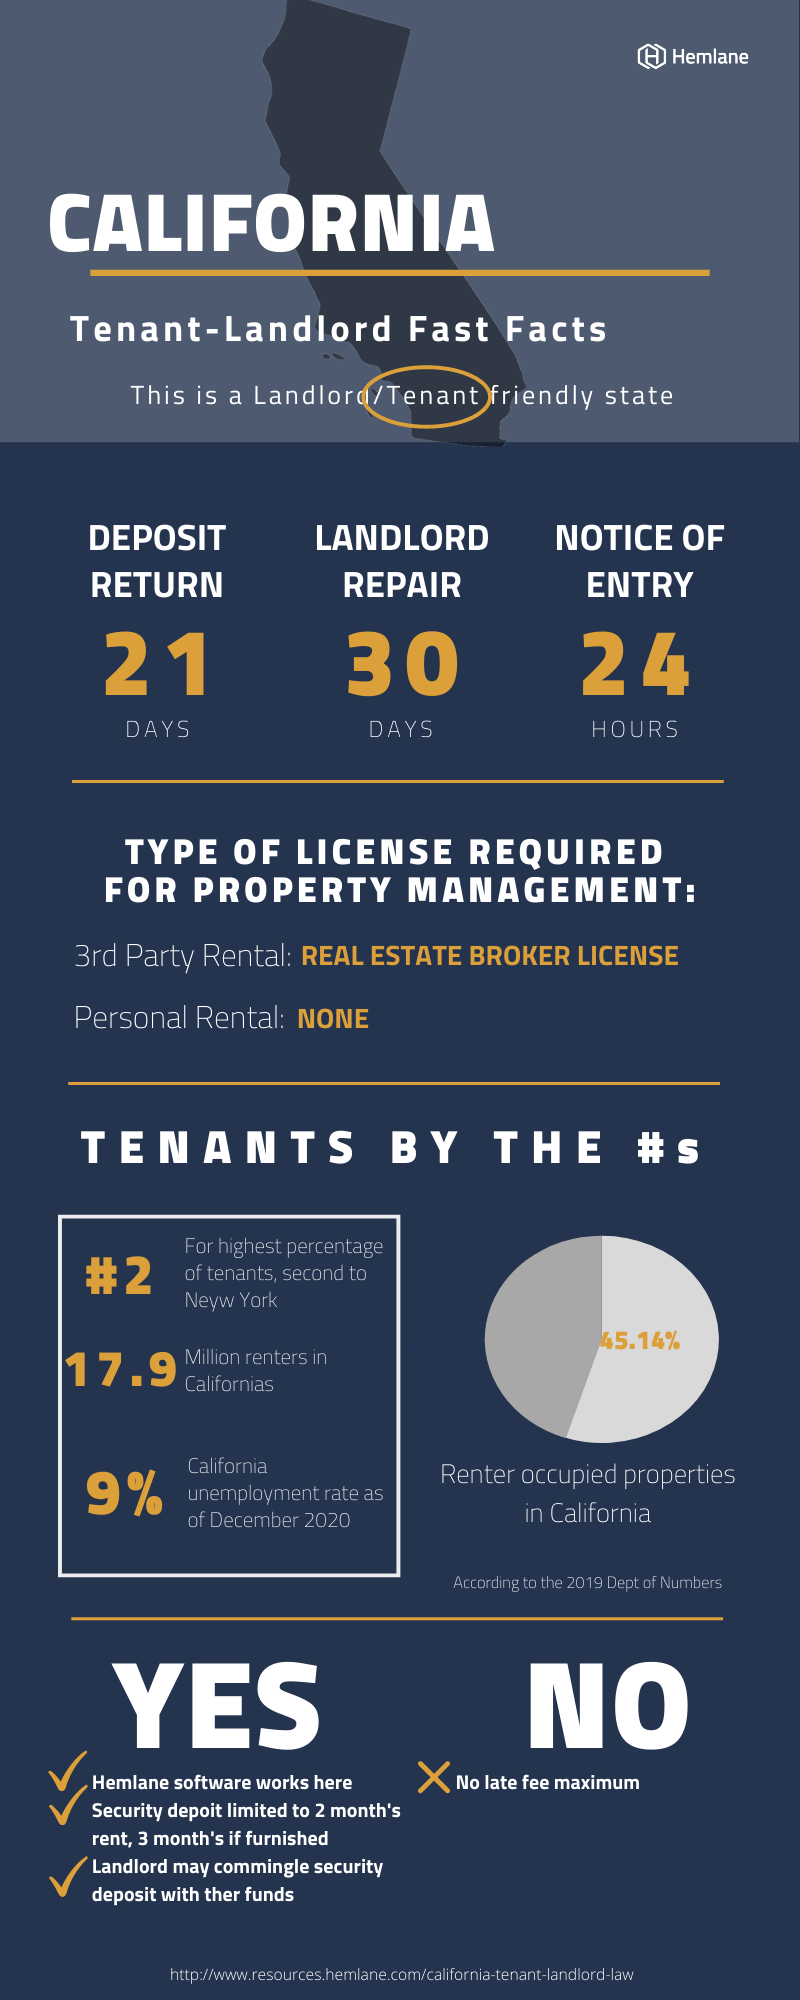 California-Landlord-Tenant-Law-Fast-Facts